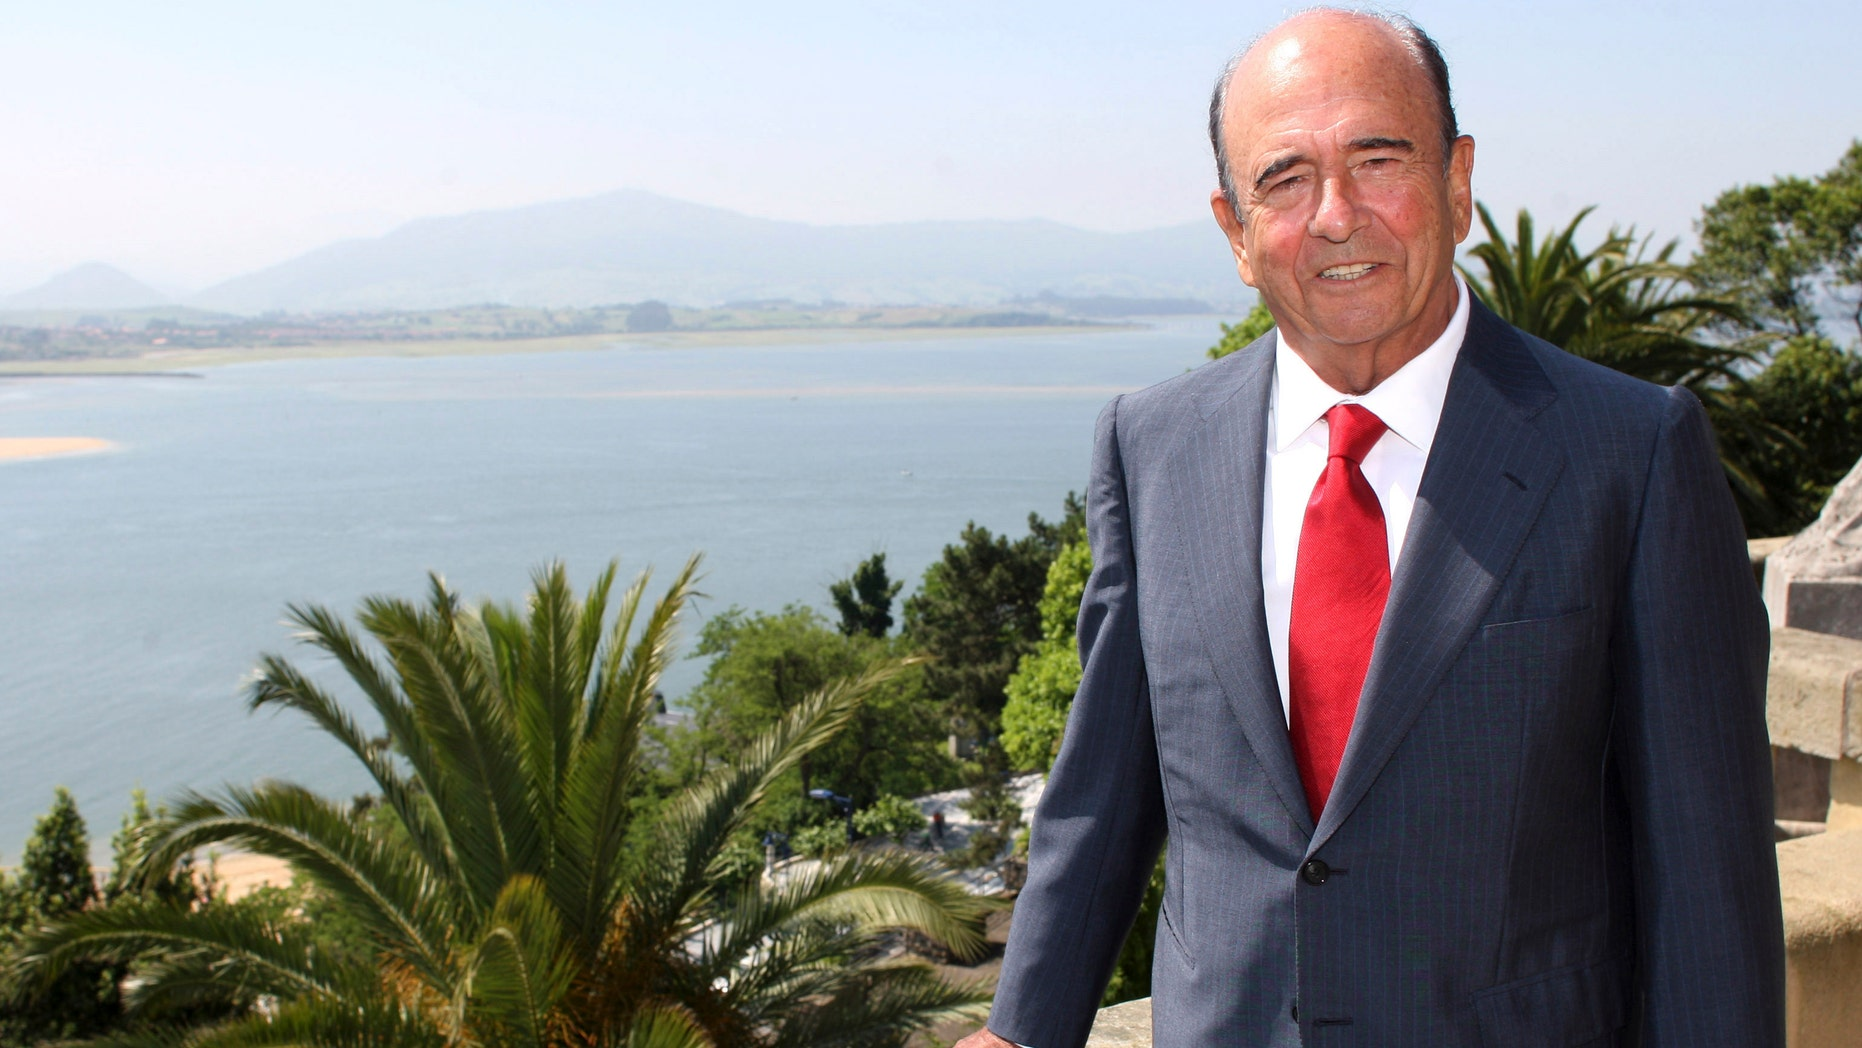 FILE - In this June 19, 2008 file photo, banker Emilio Botin poses at his home in Santander, Spain. Spanish banking magnate Botin, who built the country's Banco Santander into a global financial giant, has died Tuesday night, Sept. 9, 2014 of a heart attack. He was 79. Botin was known for his hands on leadership of the bank and turned the small institution run by his father into the eurozone's largest by market capitalization through a series of acquisitions. (AP Photo/Juan Manuel Serrano, File)